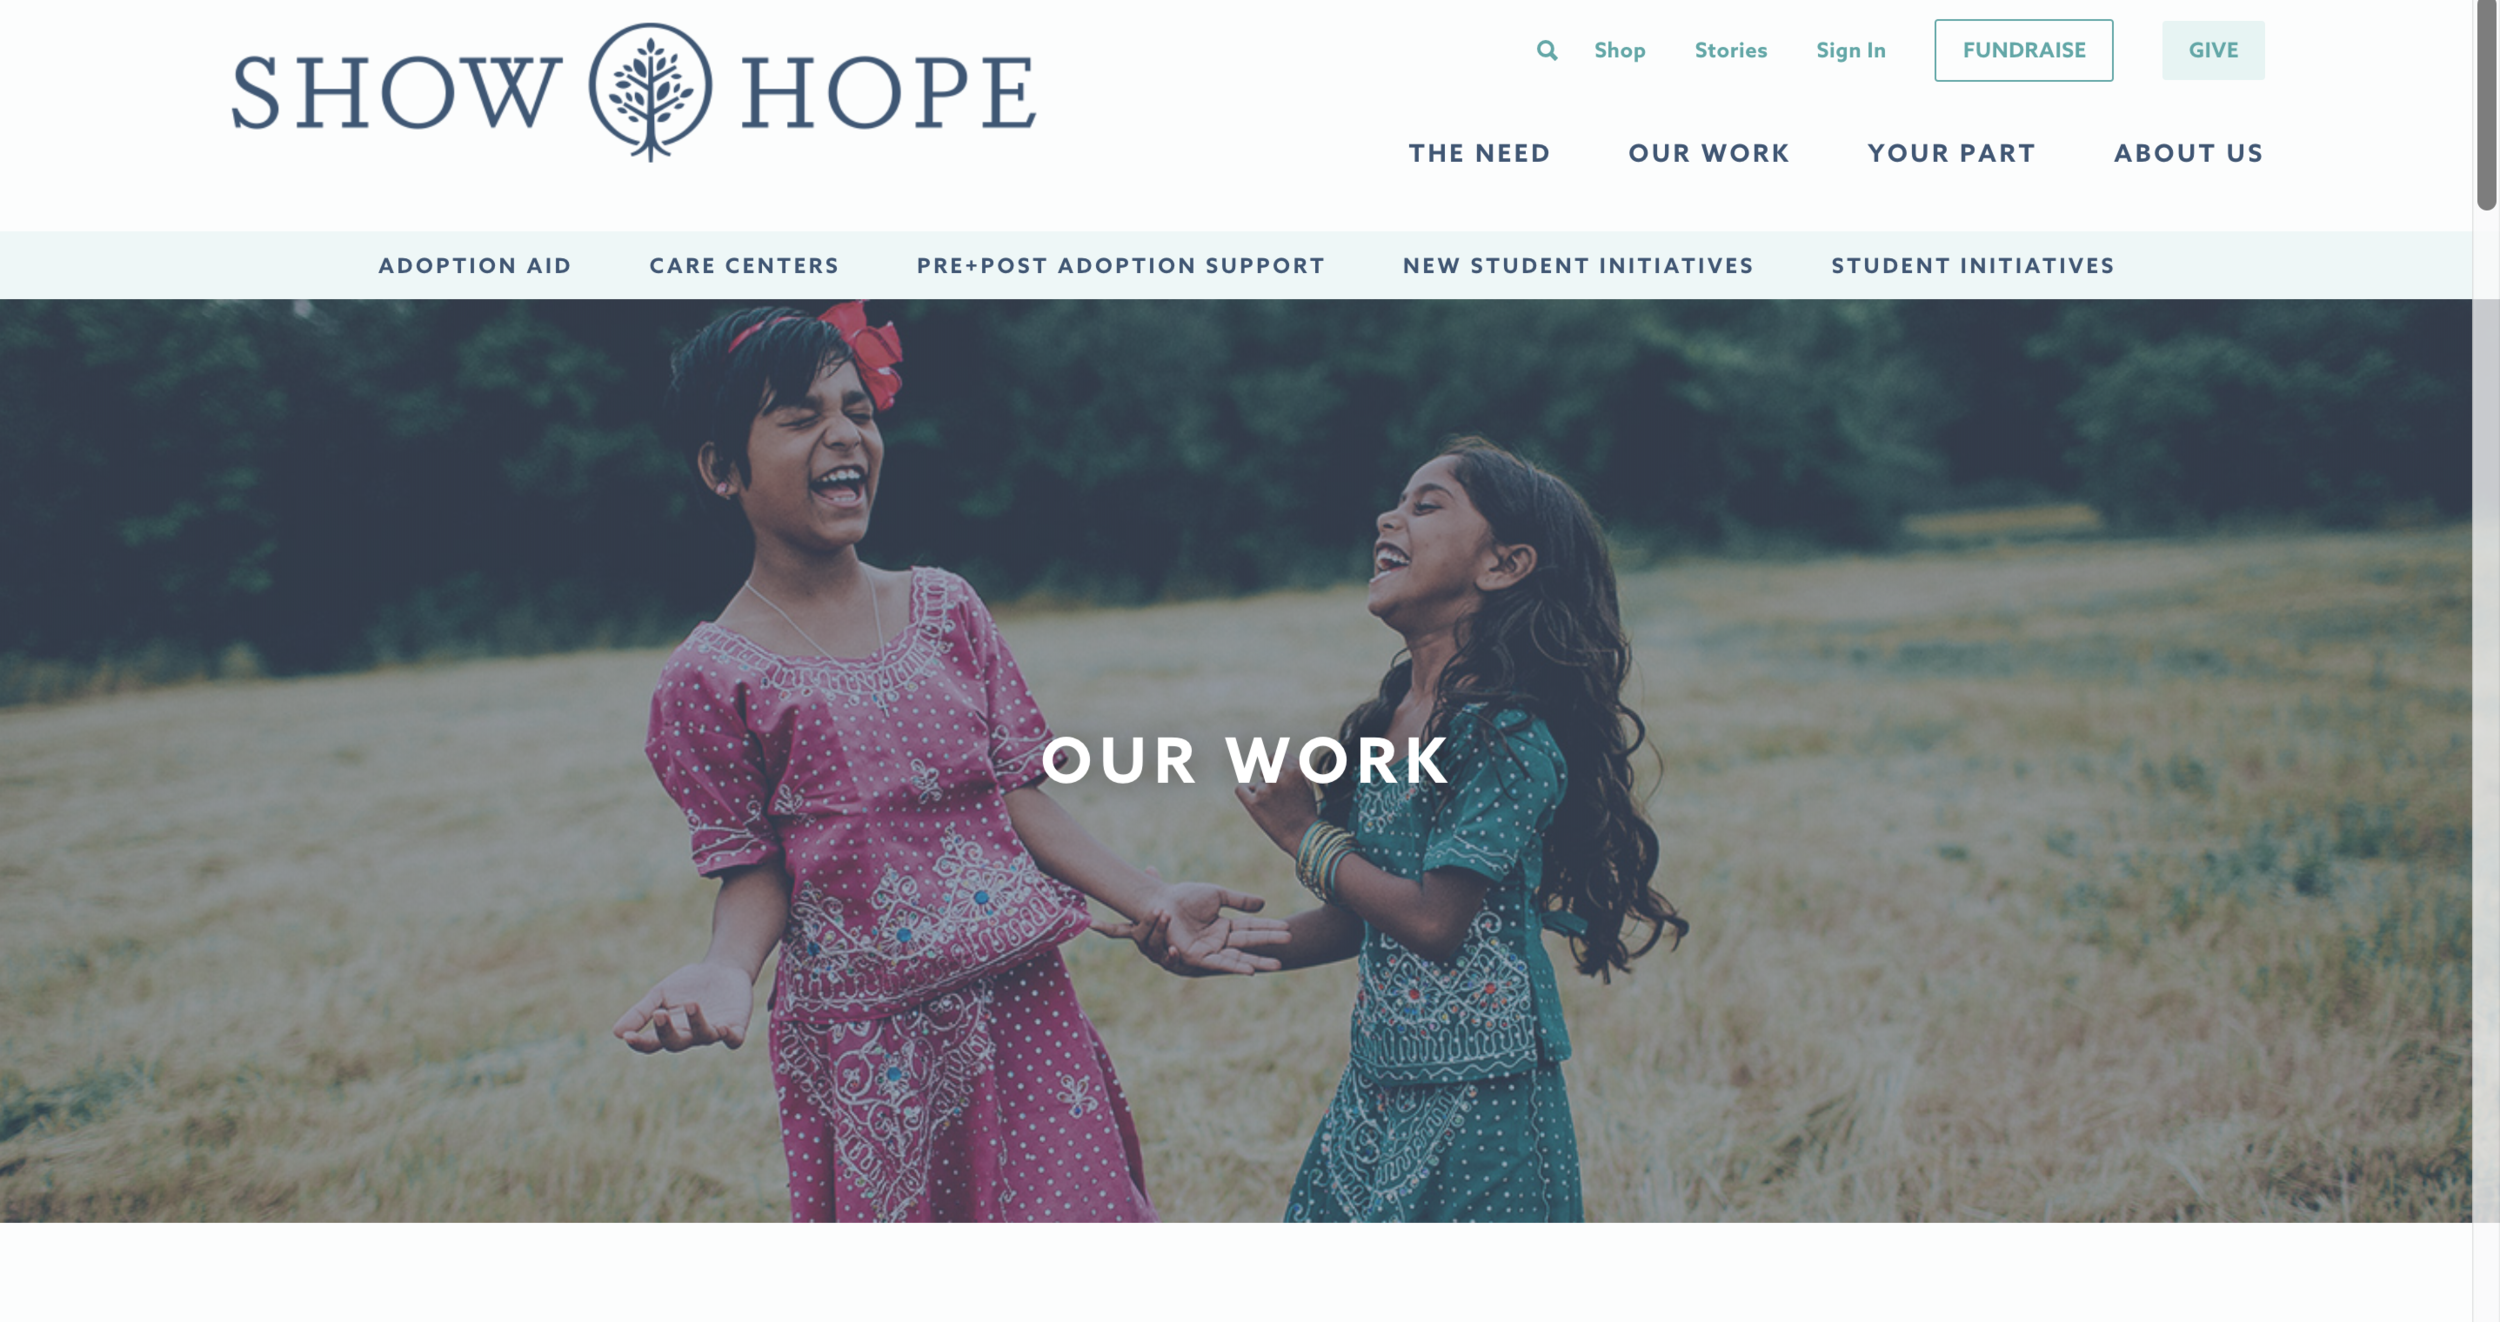 SHOW HOPE - Our mission: To care for orphans by engaging the Church and reducing barriers to adoption.